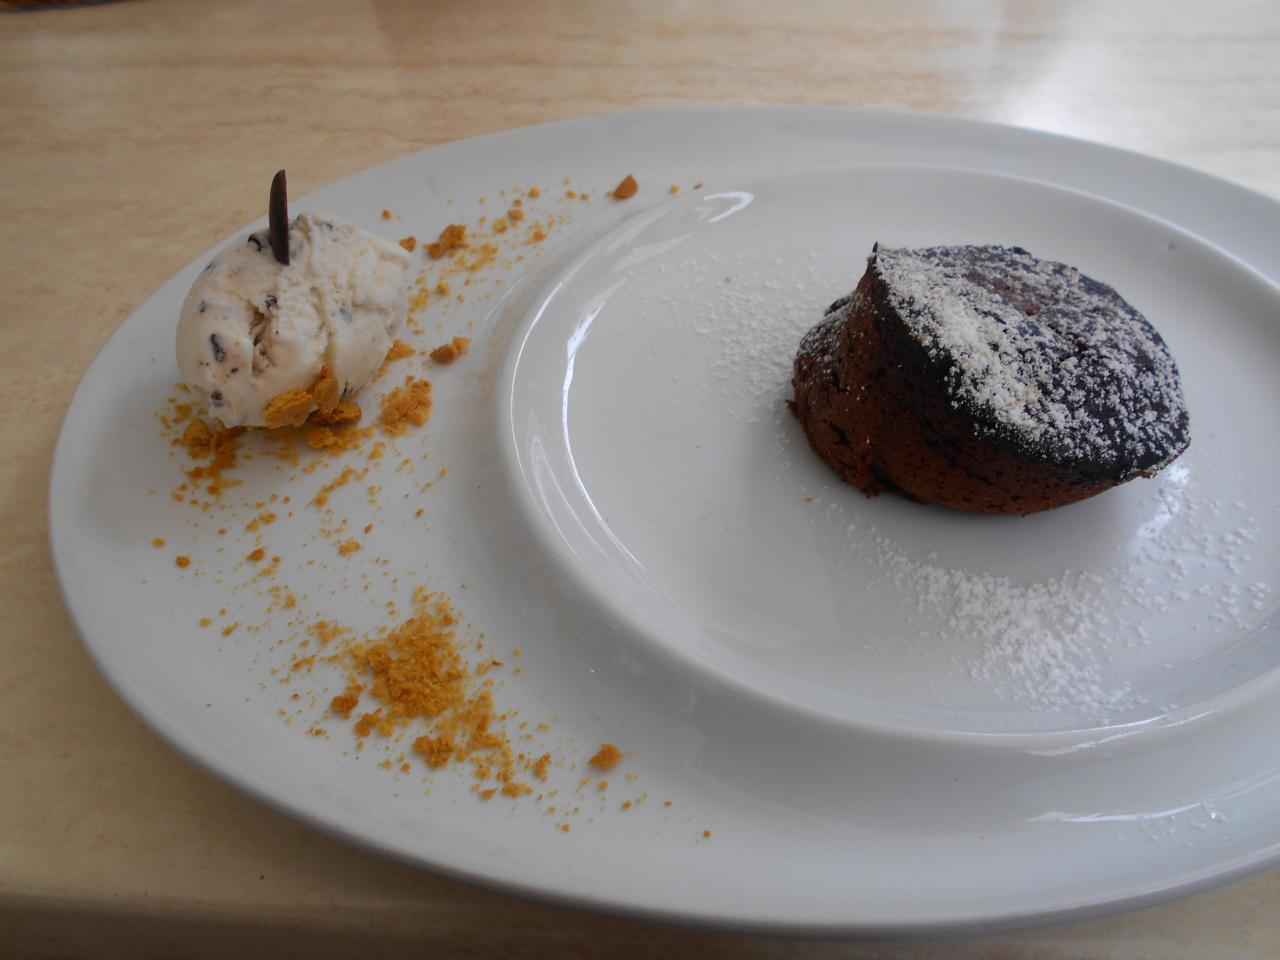 The coulant de chocolate